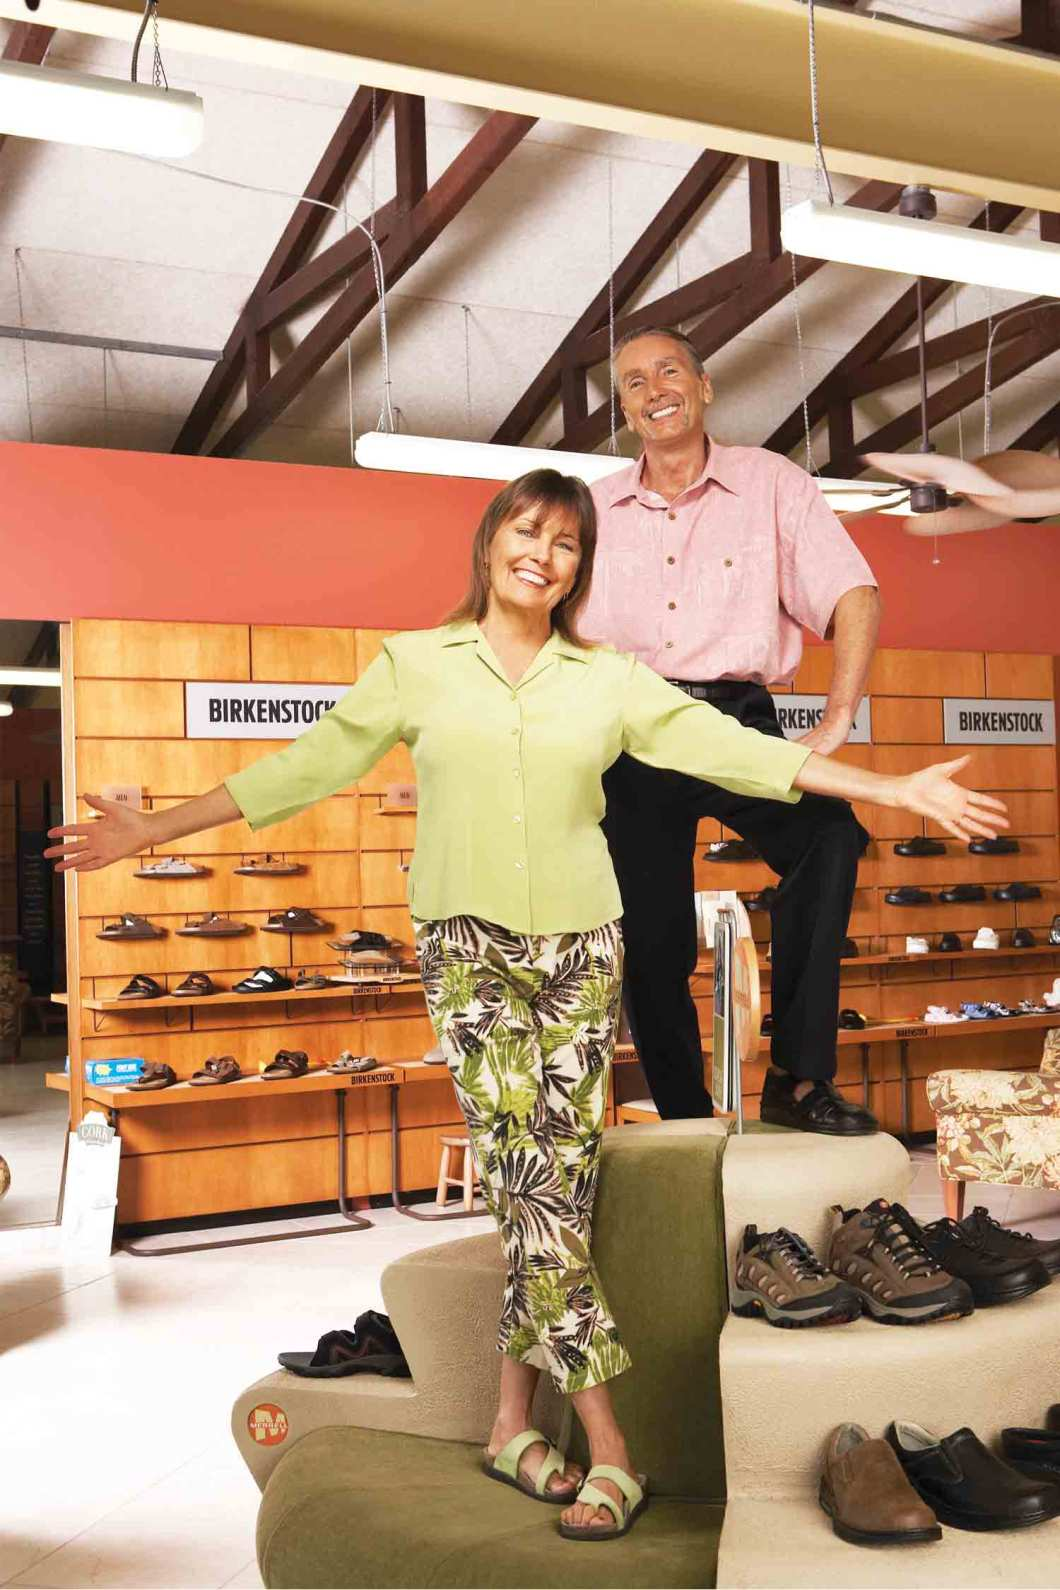 happy feet plus owners jane strong jacob wurtz countryside store location